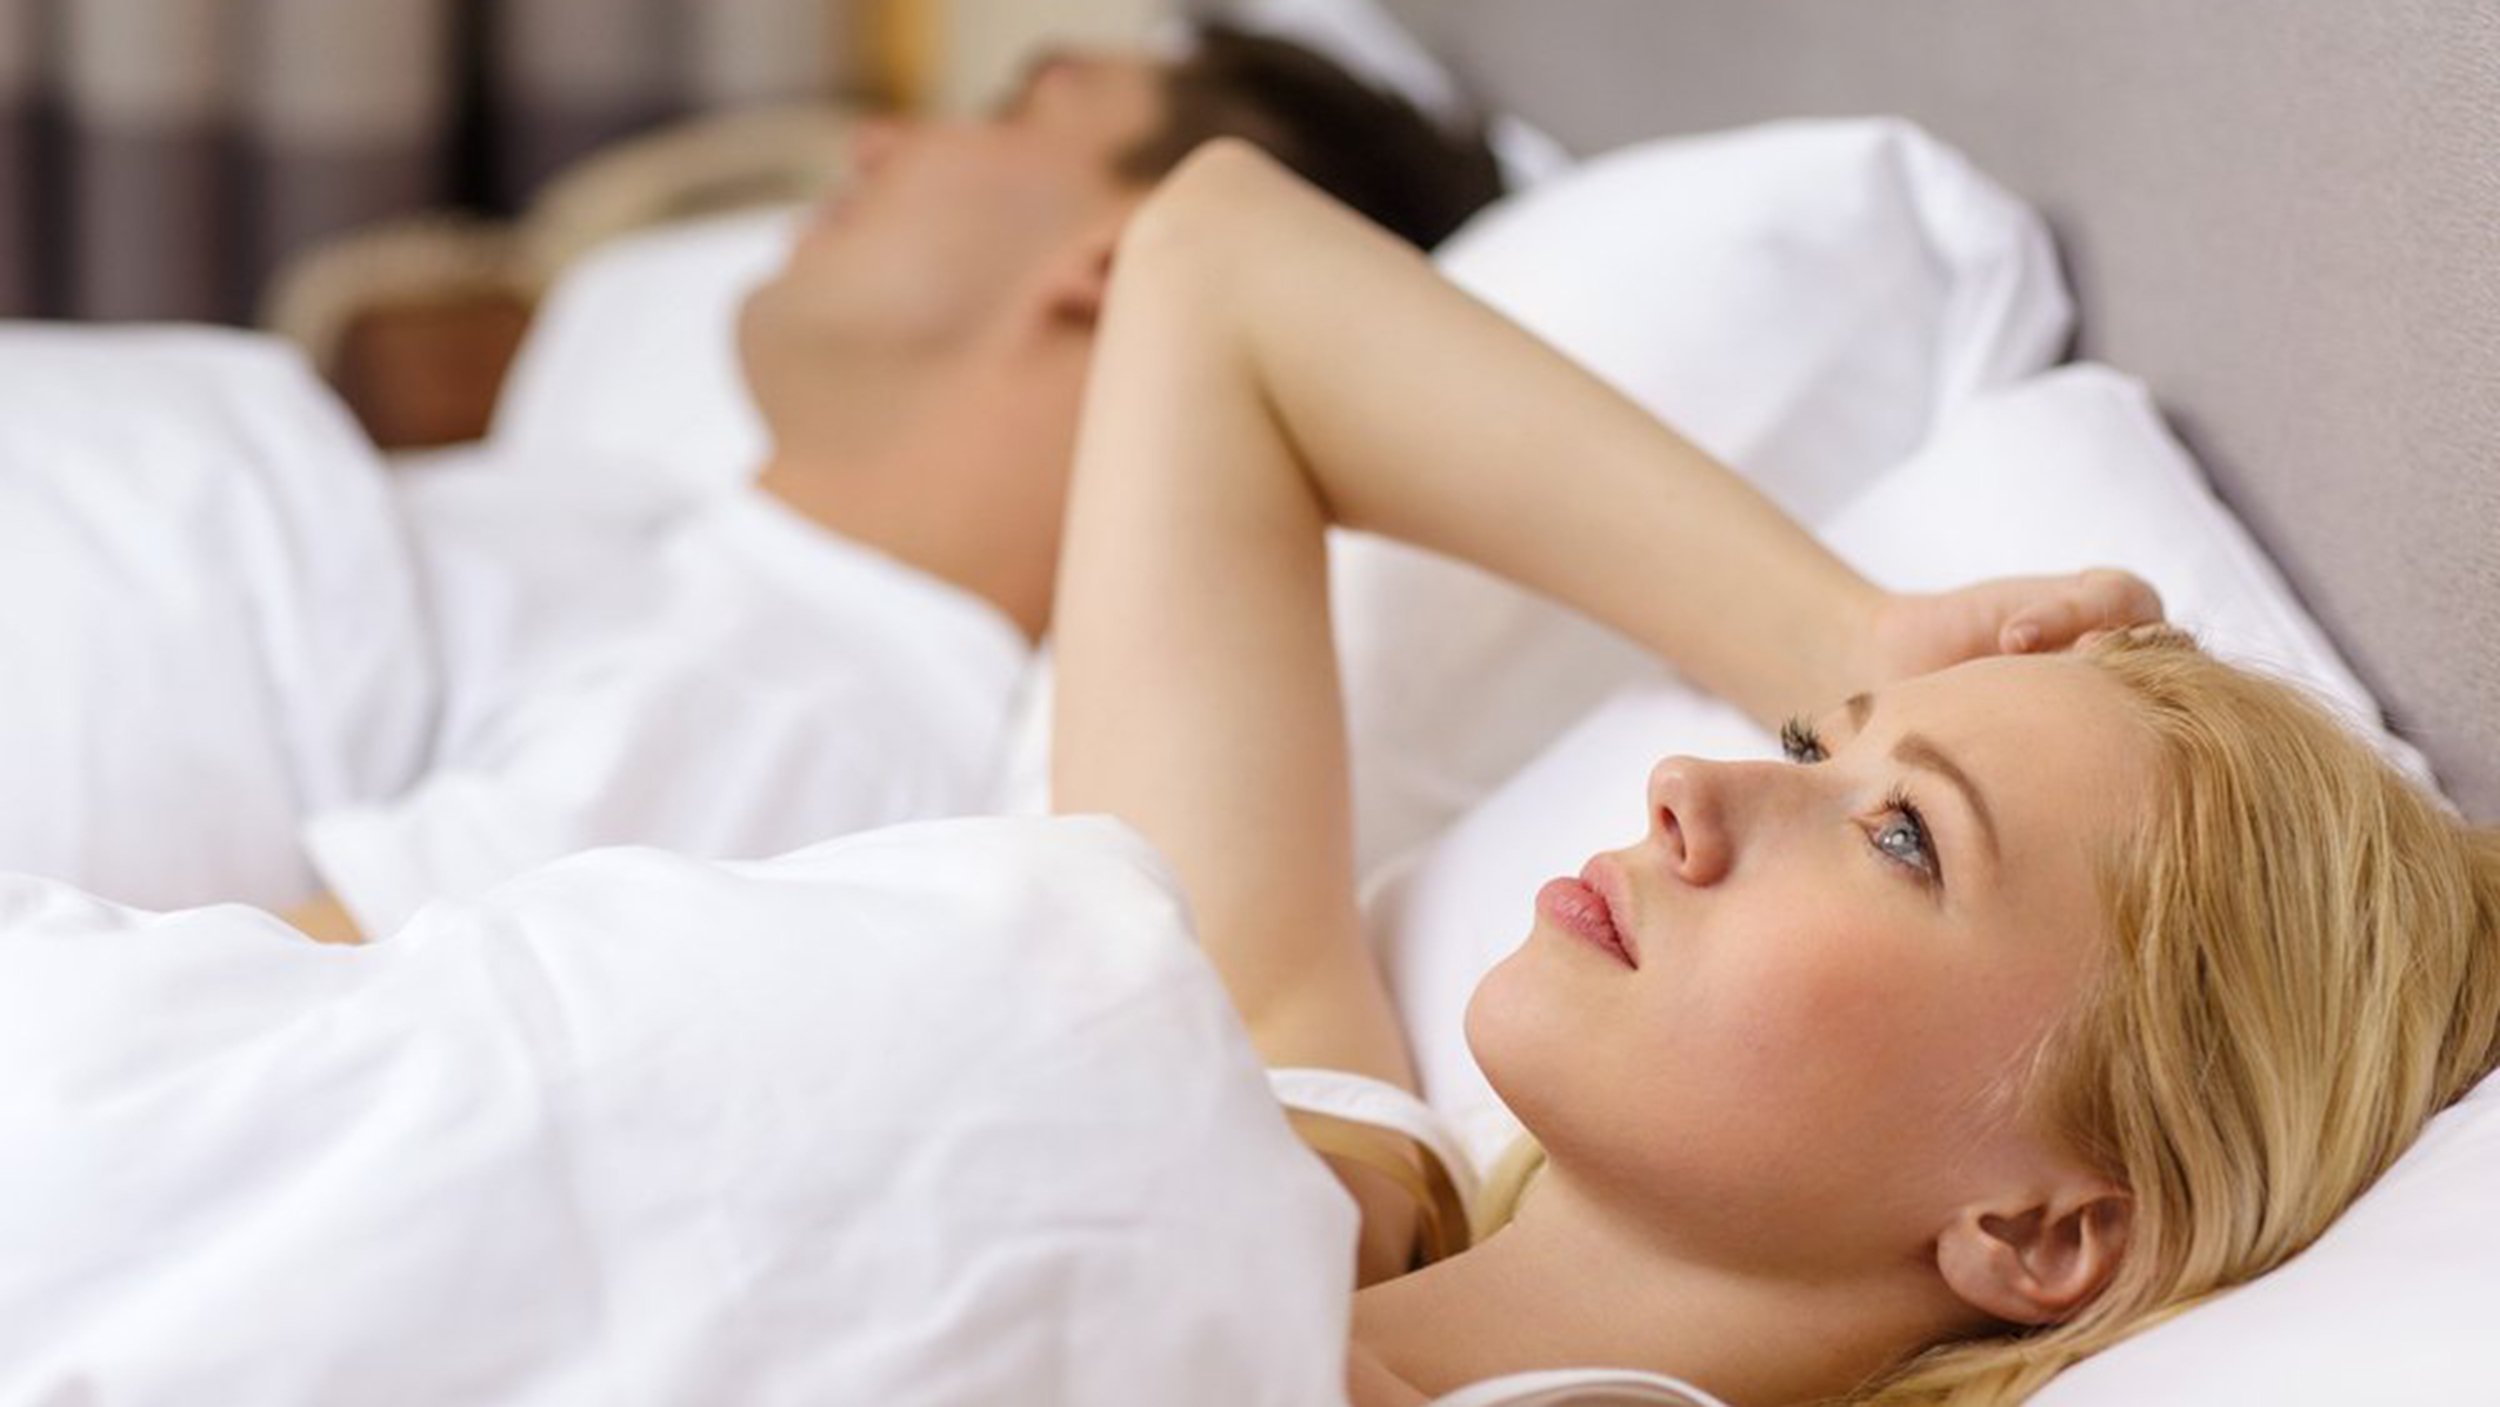 Why do women feel sleepy after sex